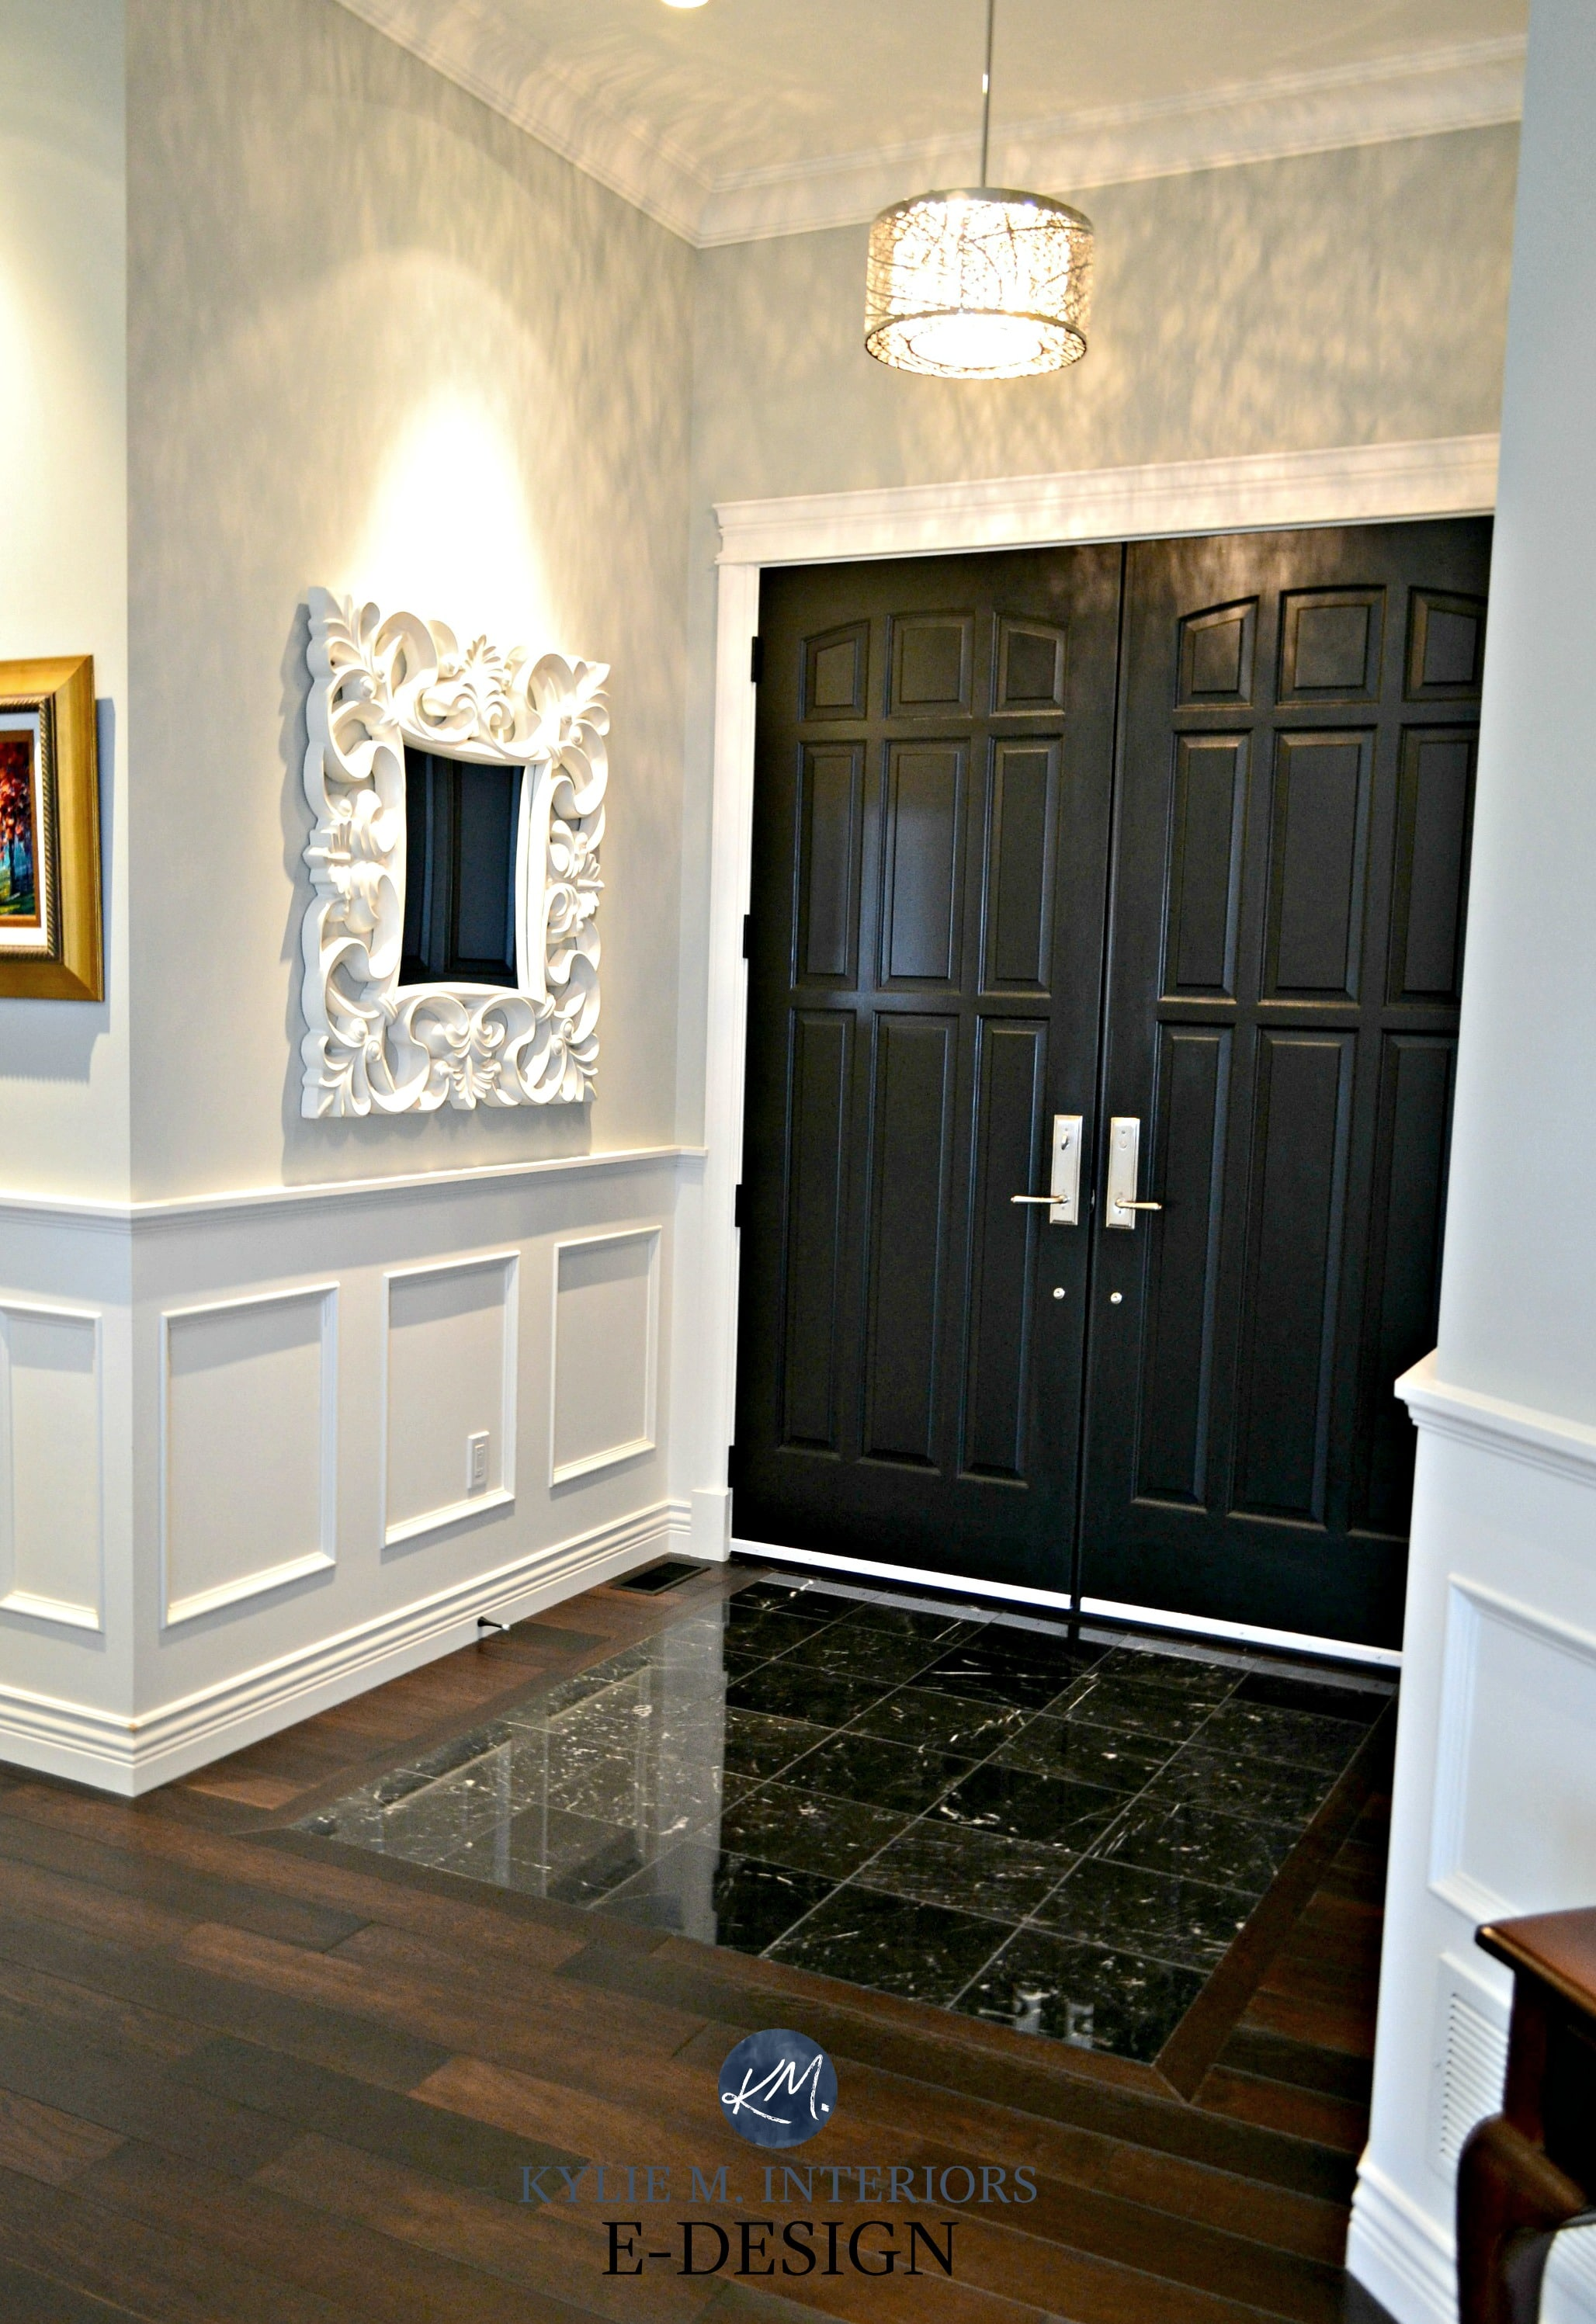 Interior front doors painted black double marble floor with dark